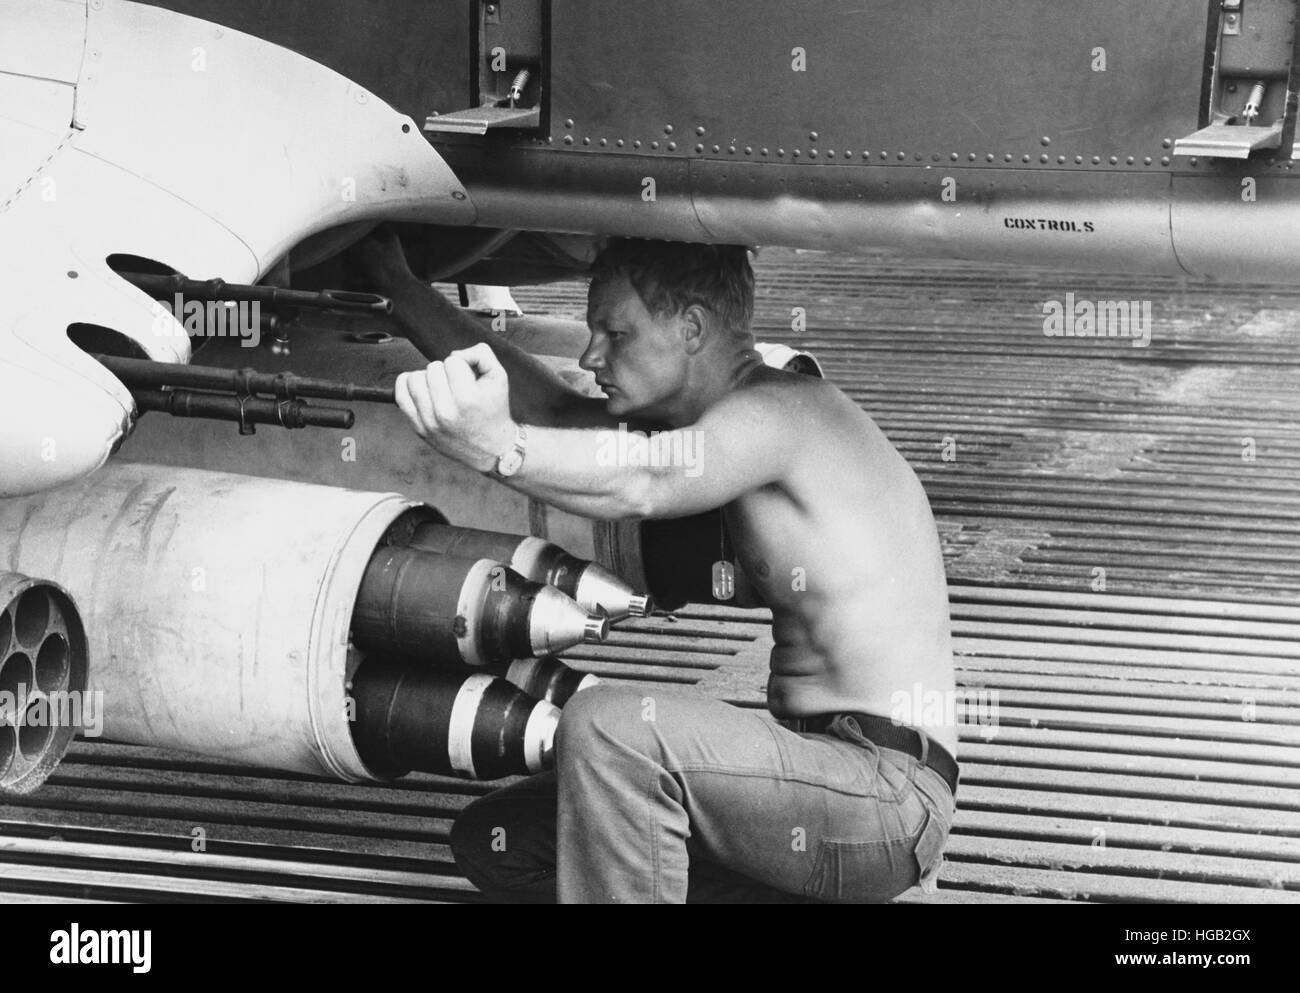 Aviation Machinist Mate drains a fuel sample from an OV-10A Bronco plane in Vietnam, 1969. - Stock Image